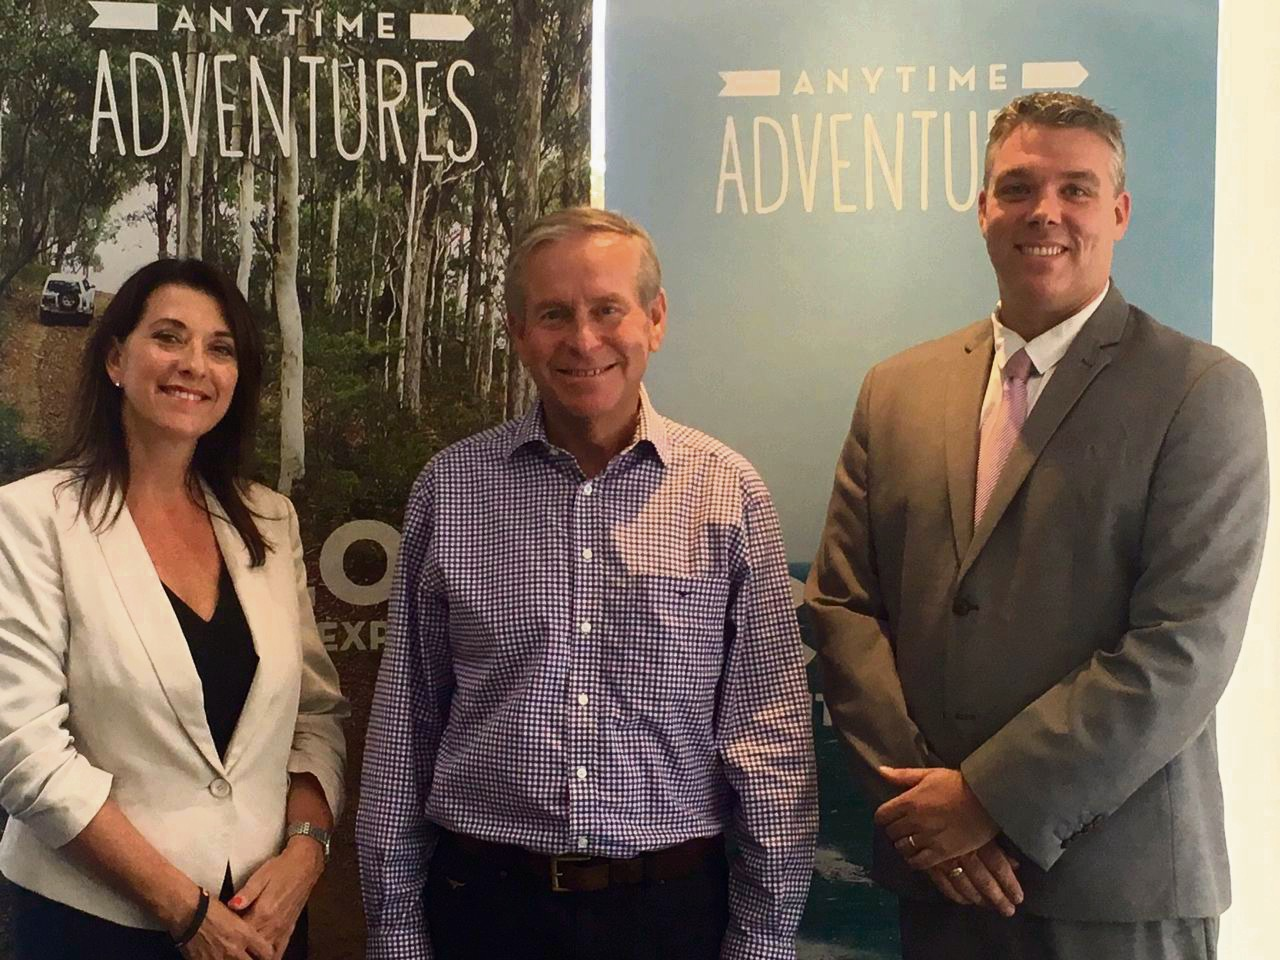 Premier Colin Barnett held his first official meeting as Minister for Tourism with MAPTO chief executive Karen Priest and Chairman Leighton Yates.